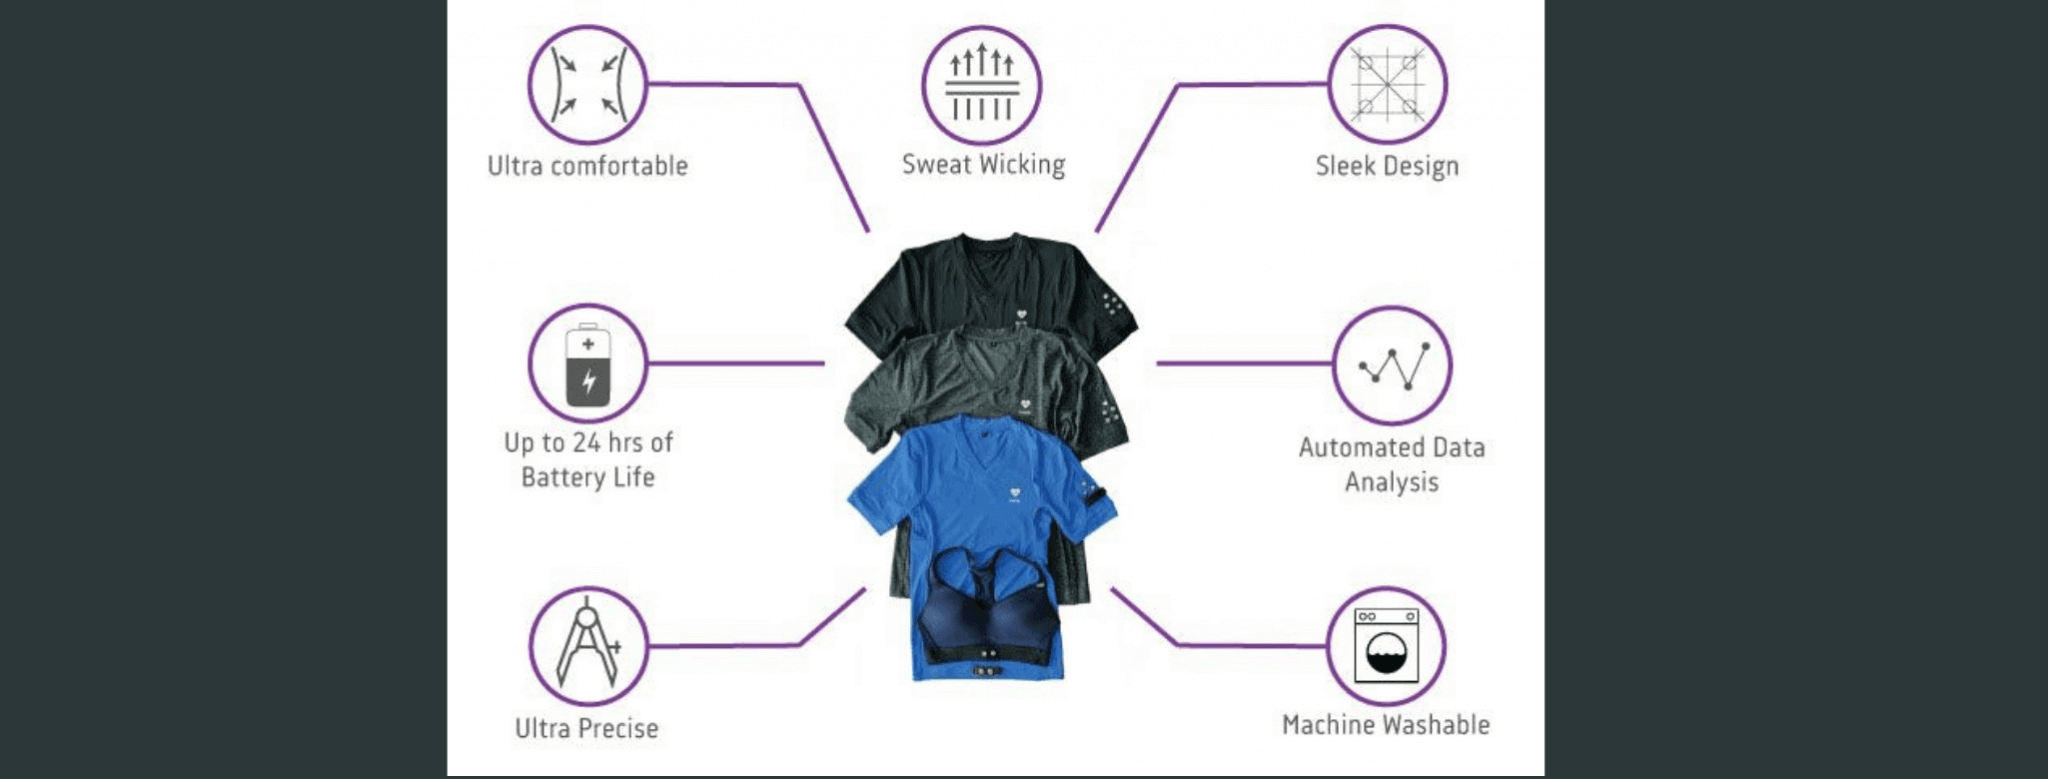 Cardiac Ailments Simplified Using Heat - Monitoring T-shirts opengrowth